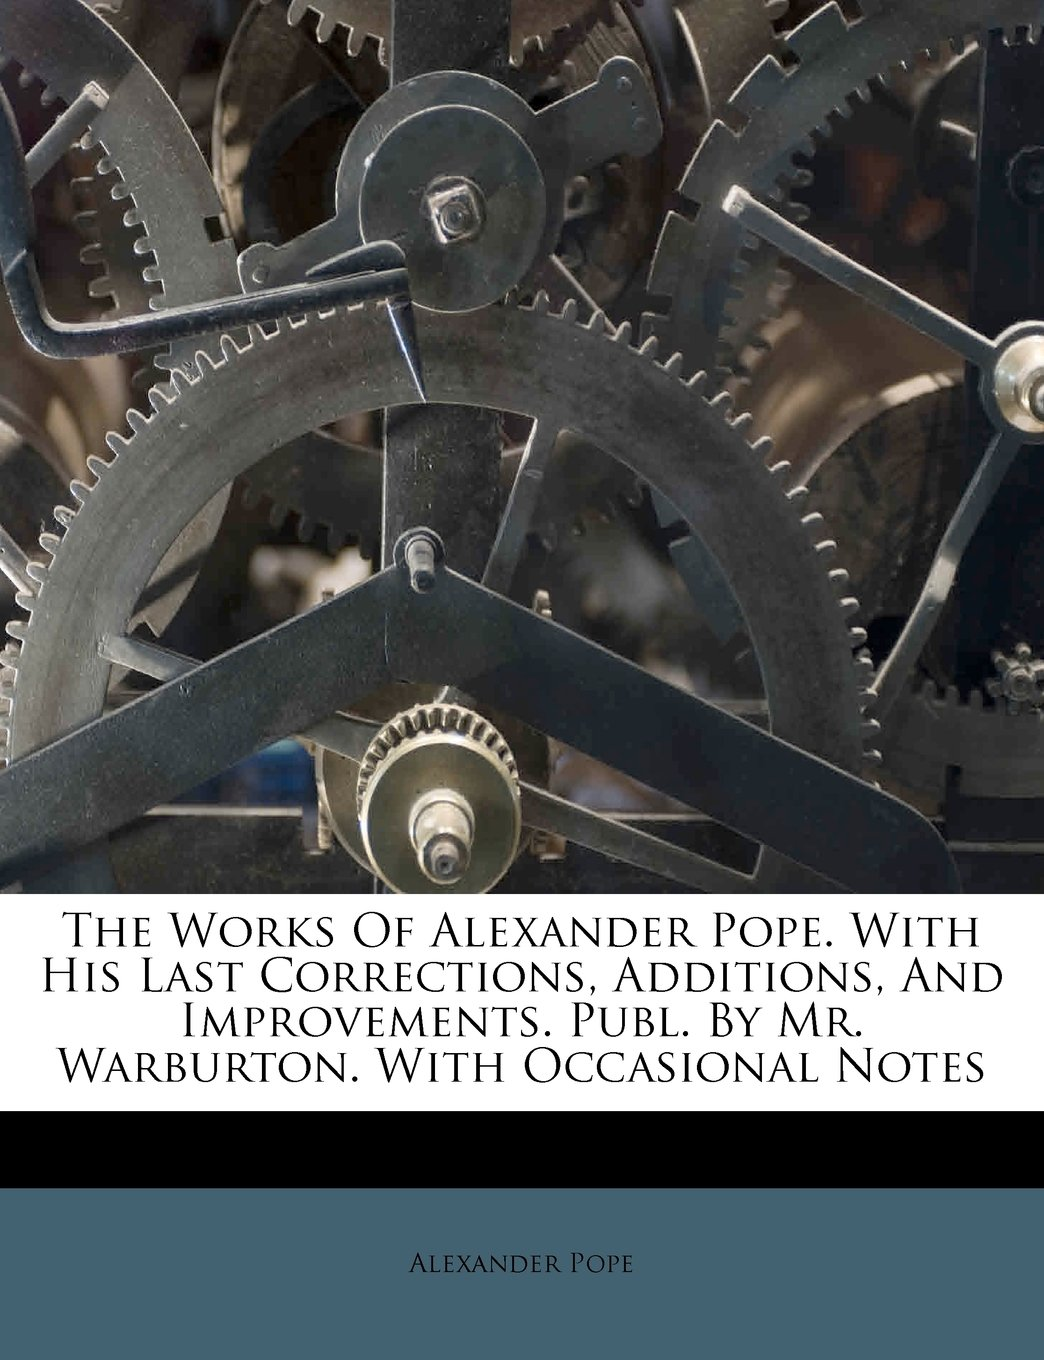 Download The Works Of Alexander Pope. With His Last Corrections, Additions, And Improvements. Publ. By Mr. Warburton. With Occasional Notes ebook